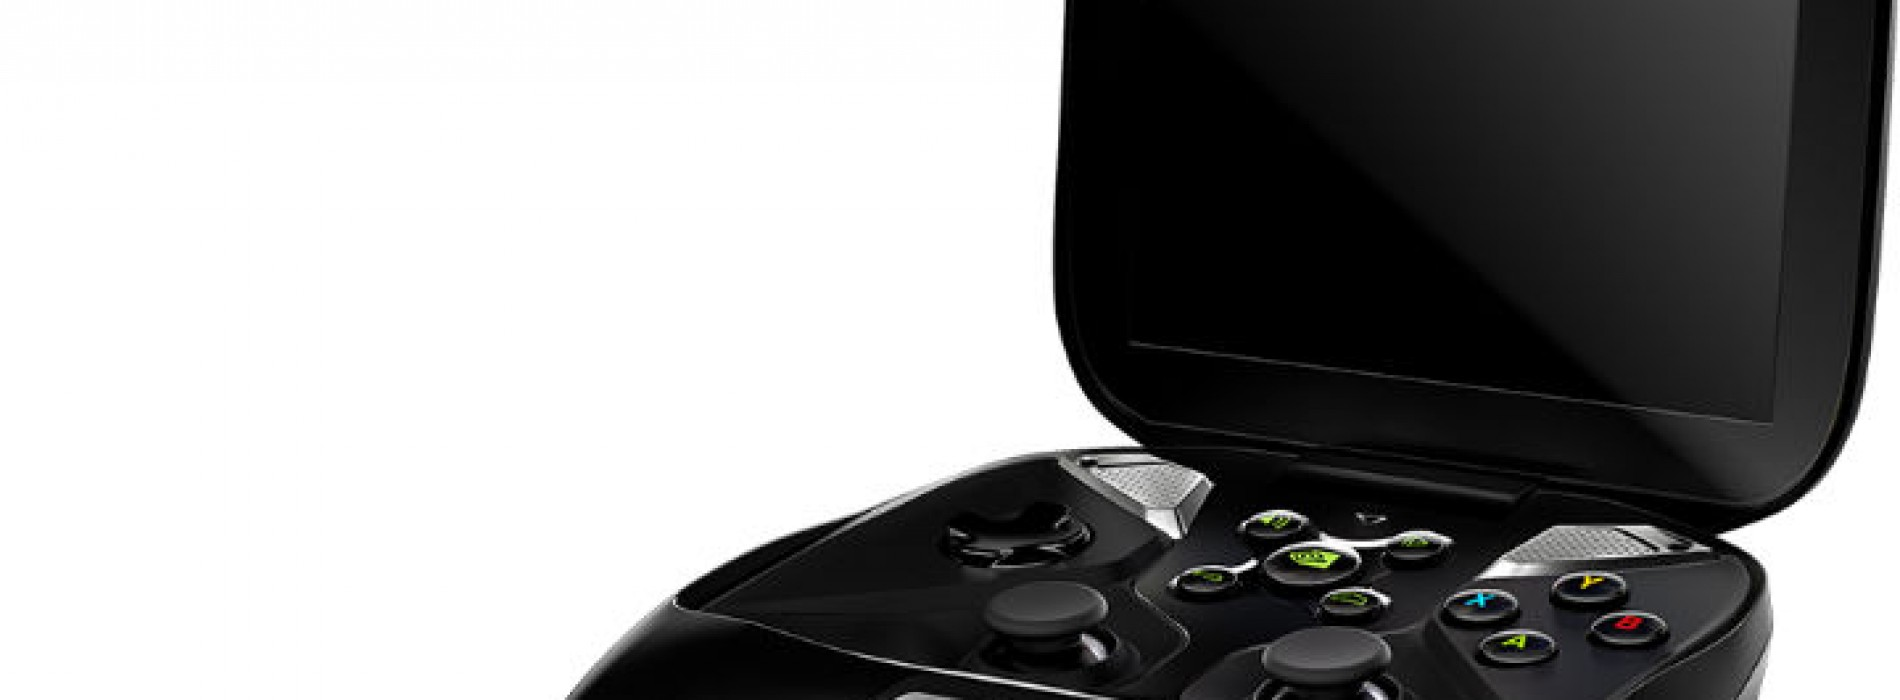 NVIDIA: Shield begins shipping July 31